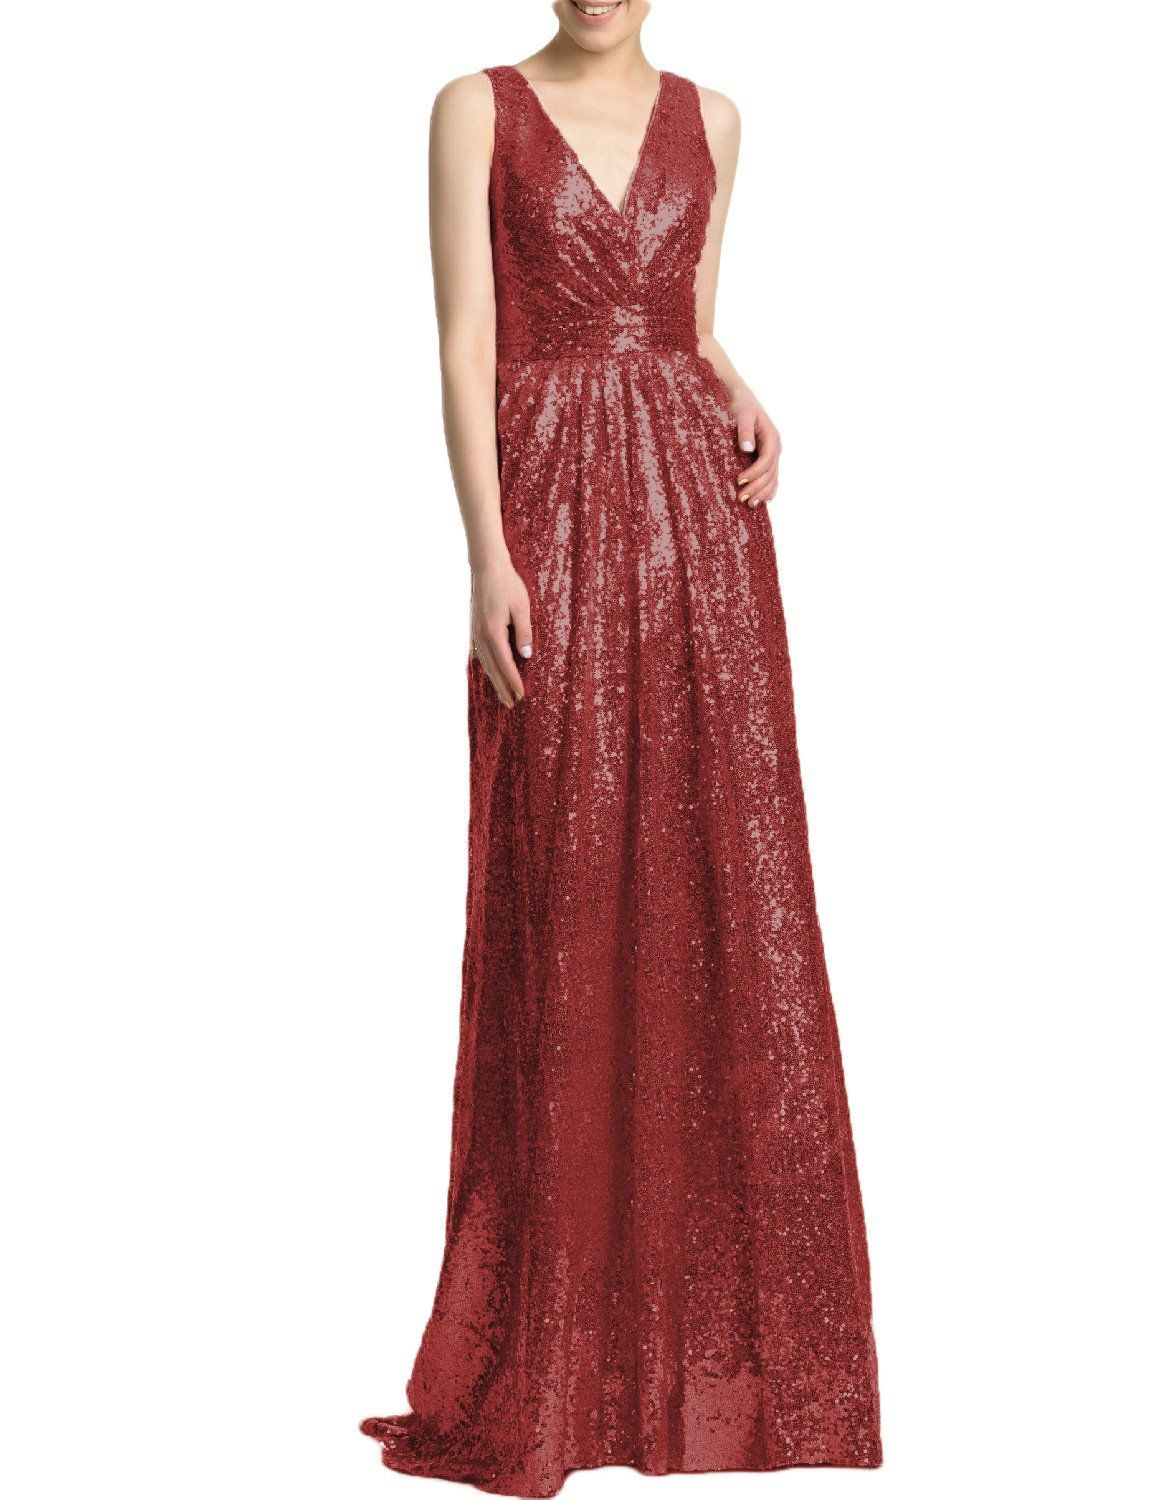 403375ce3ca BEAUTBRIDE Womens Sexy V Neck Sequin Bridesmaid Dress Long Prom Gown Rose  Burgundy 14   Take